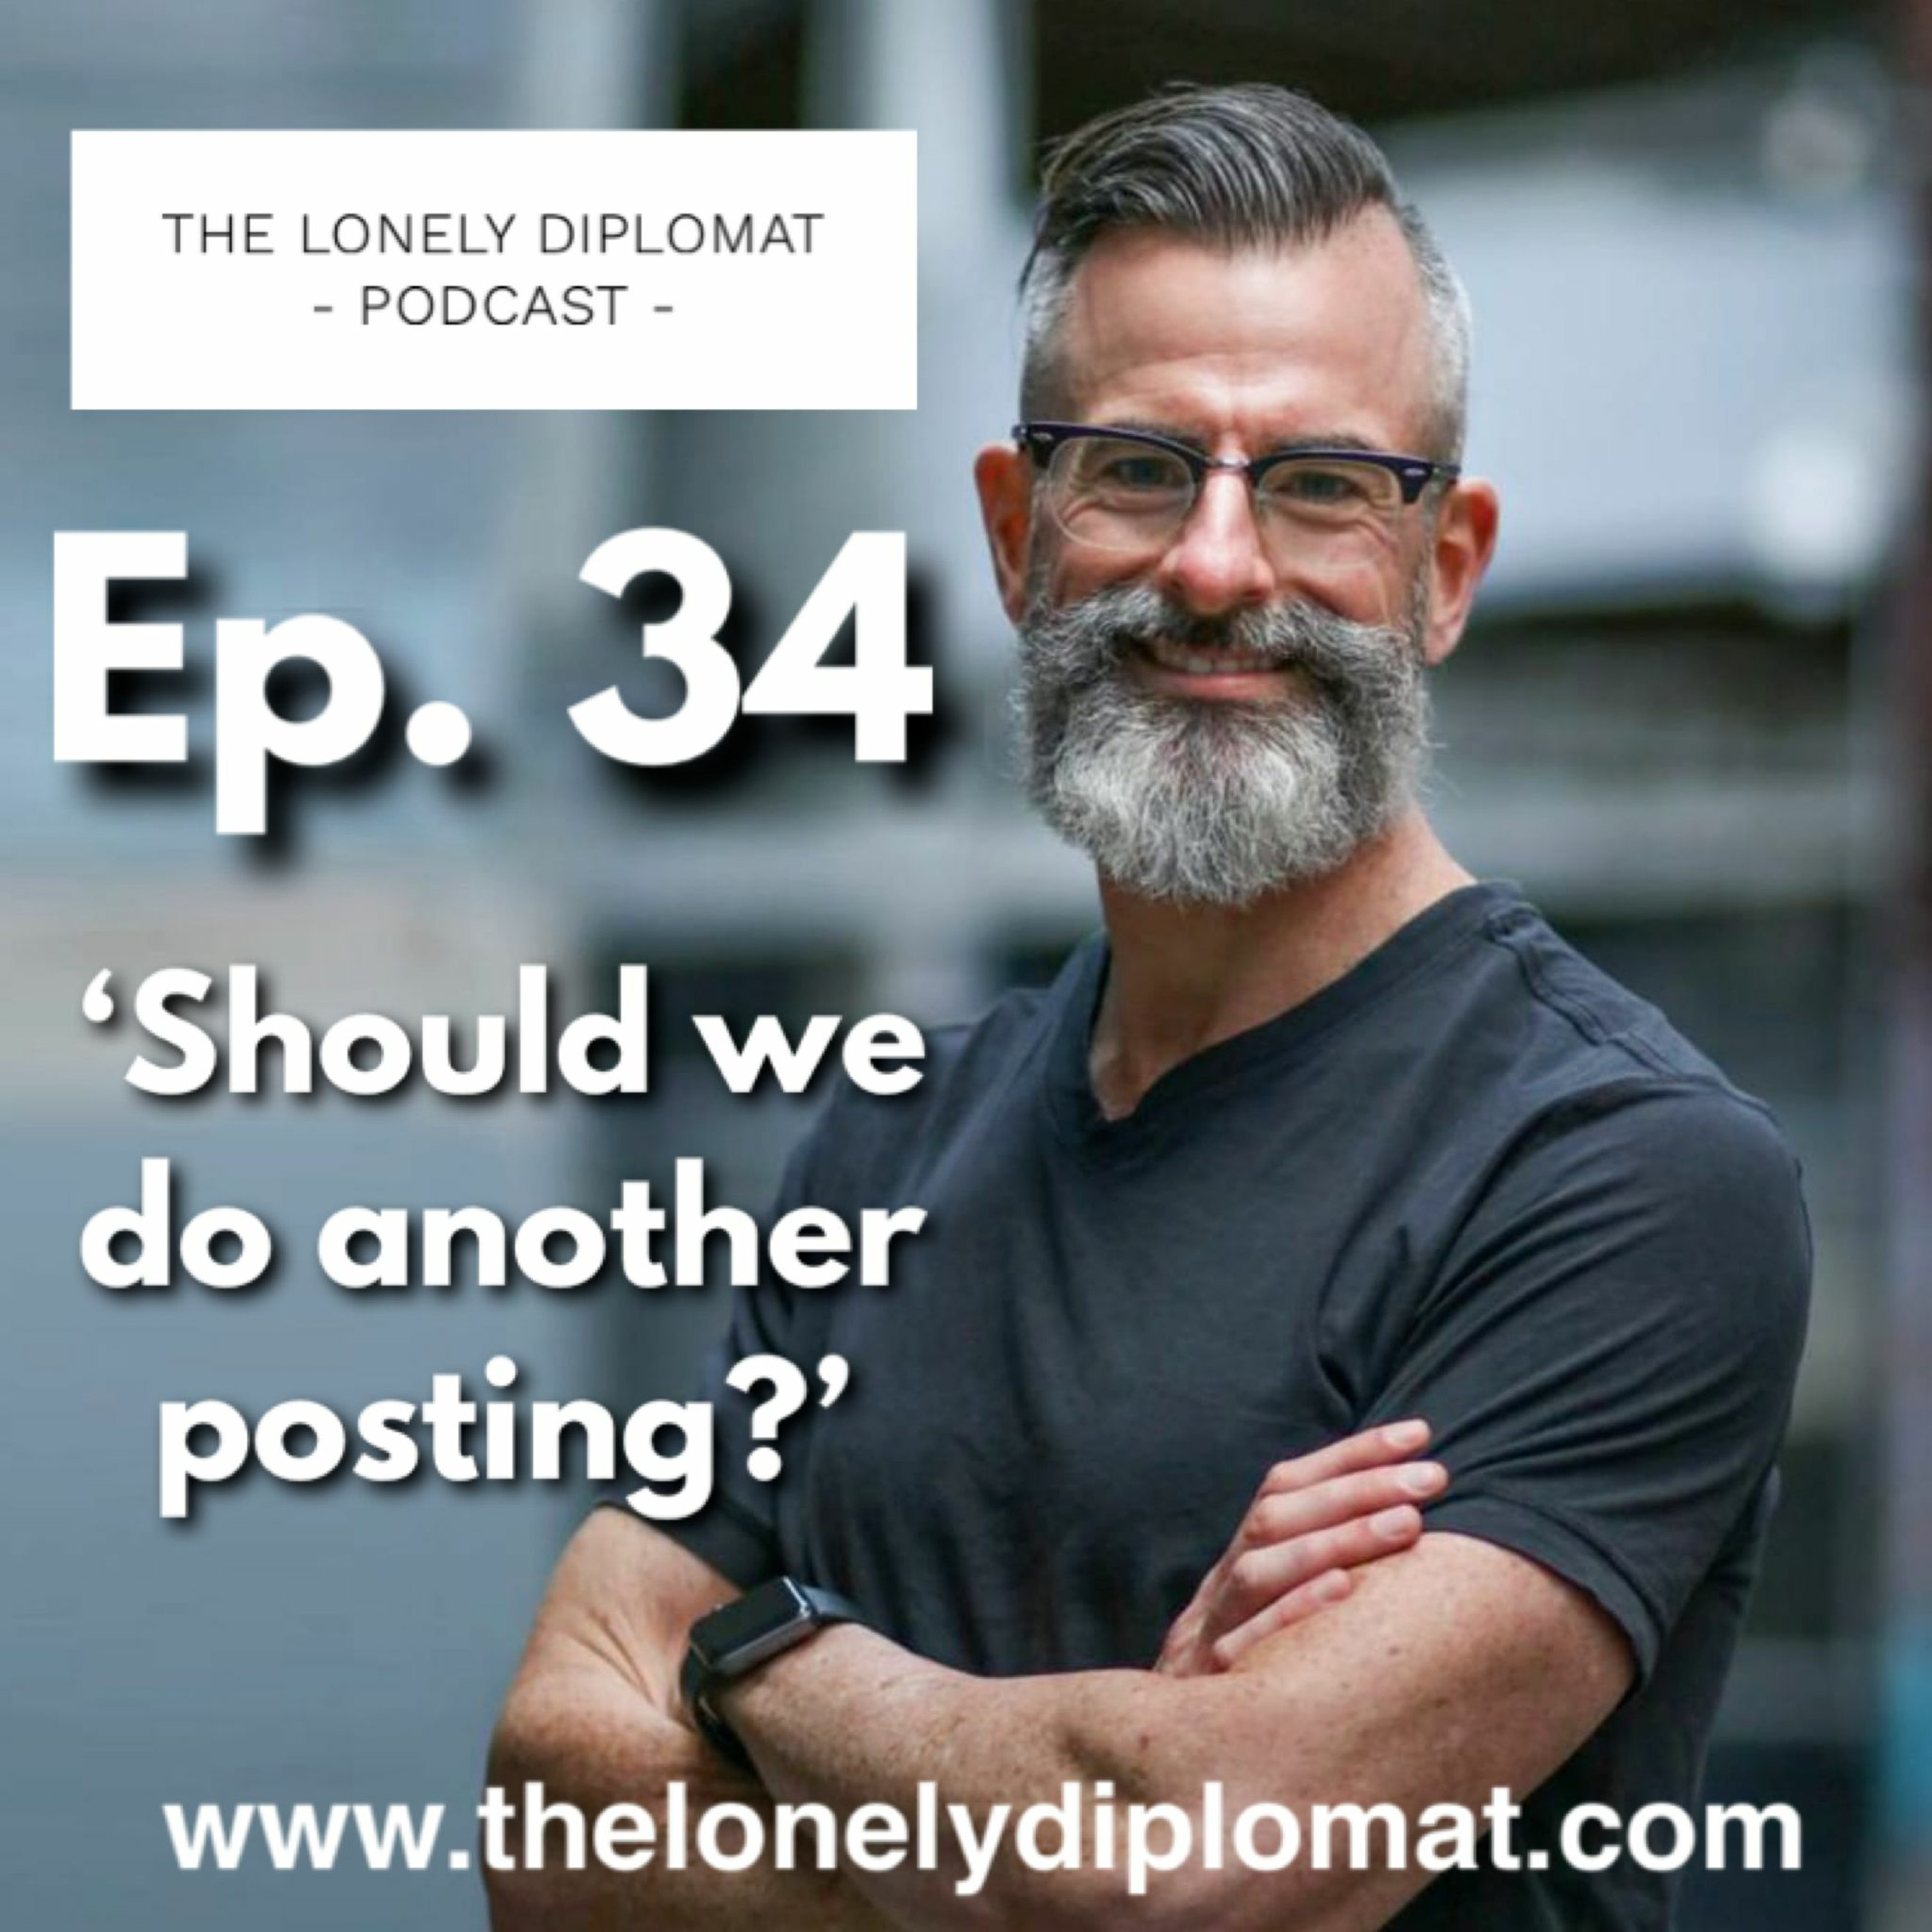 Ep. 34 - 'Should we do another posting?'